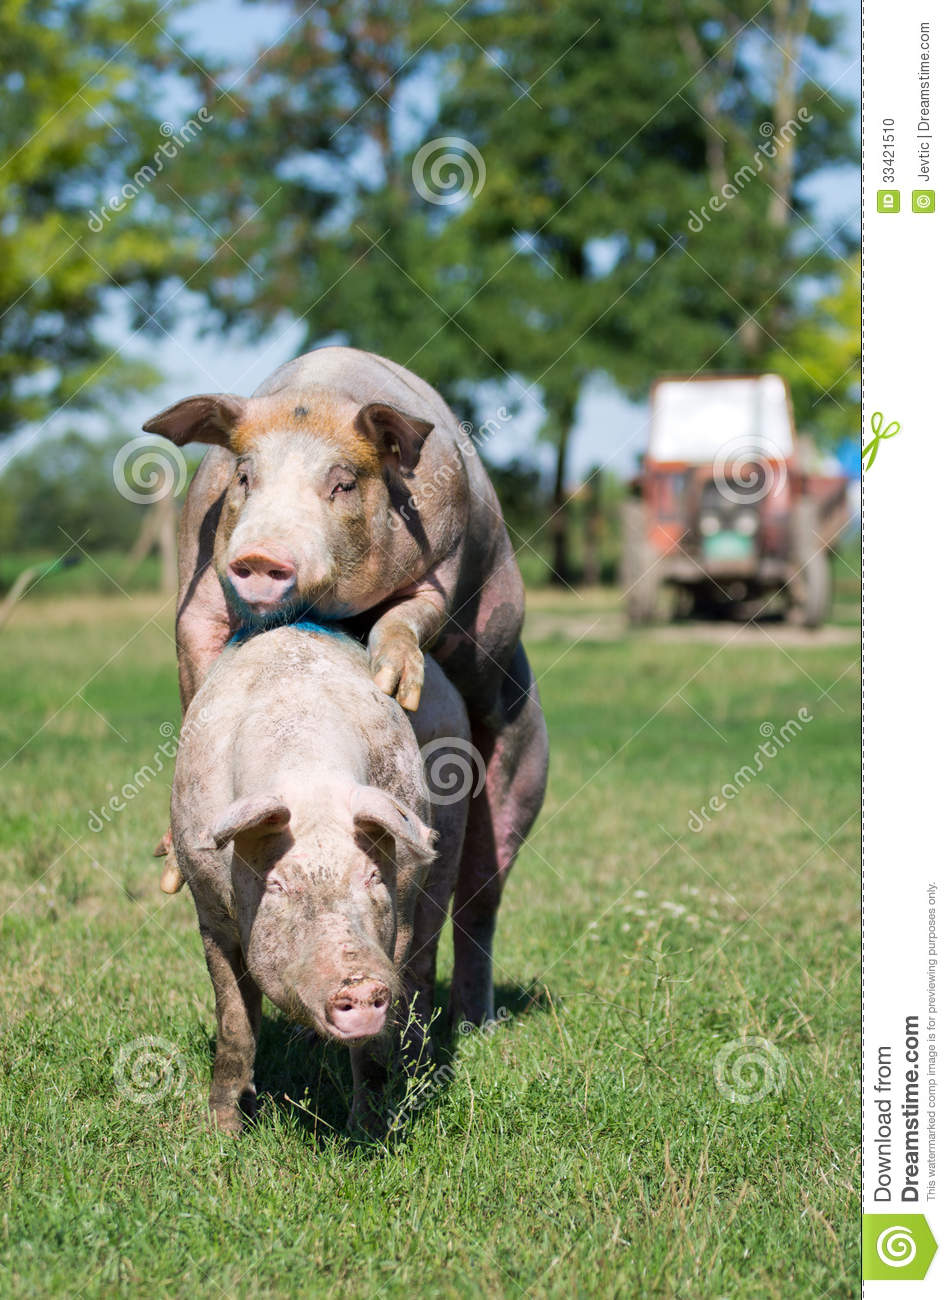 Pigs Mating Stock Photo - Image: 33421510